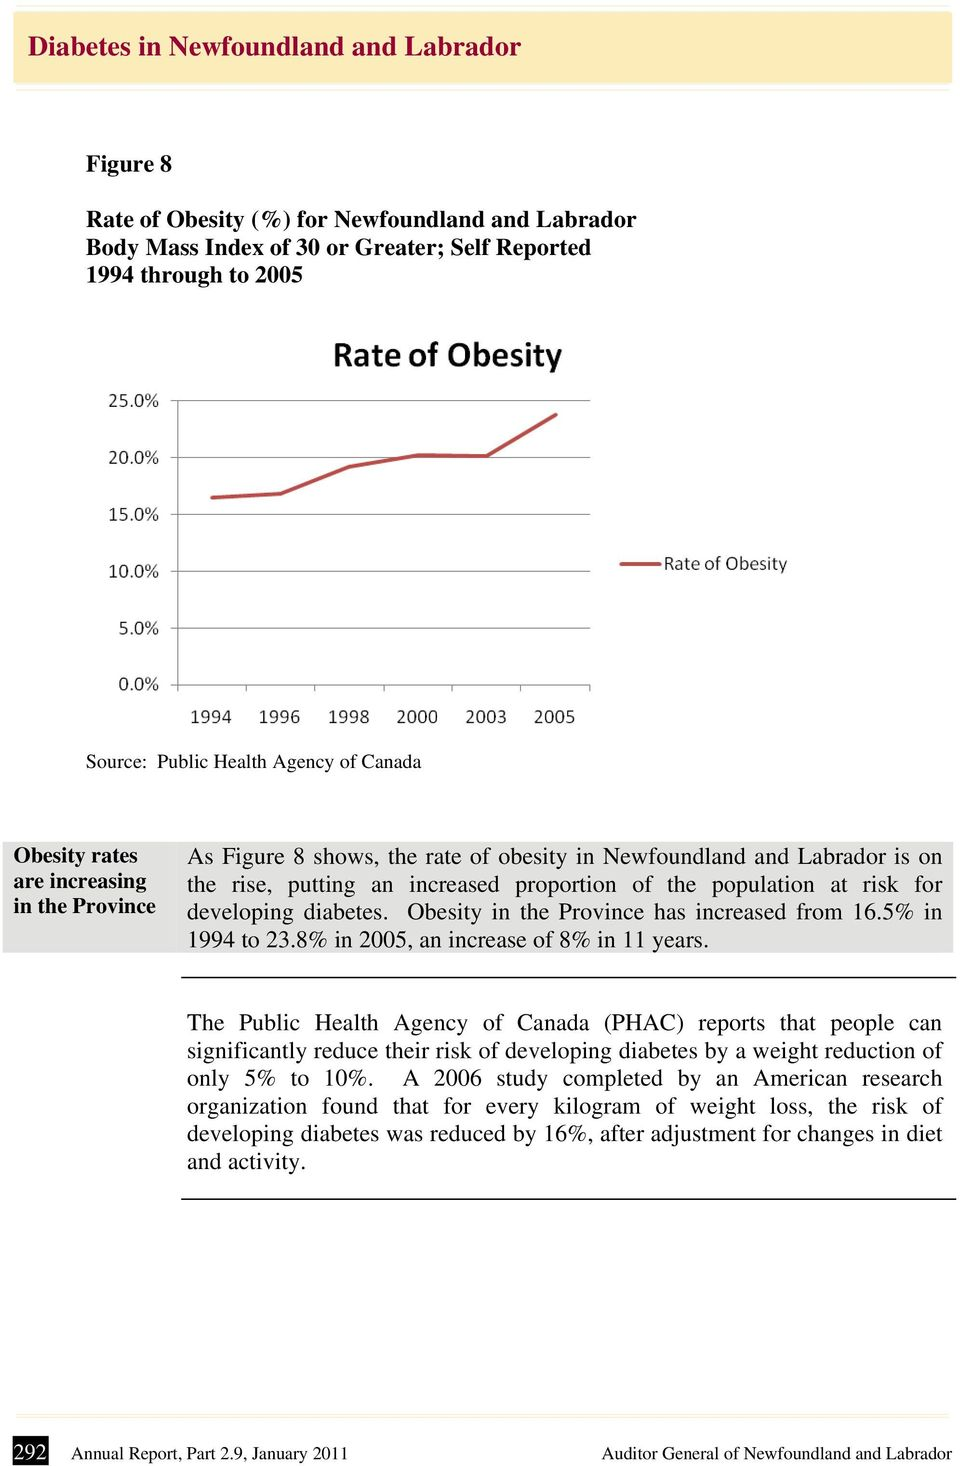 Obesity in the Province has increased from 16.5% in 1994 to 23.8% in 2005, an increase of 8% in 11 years.